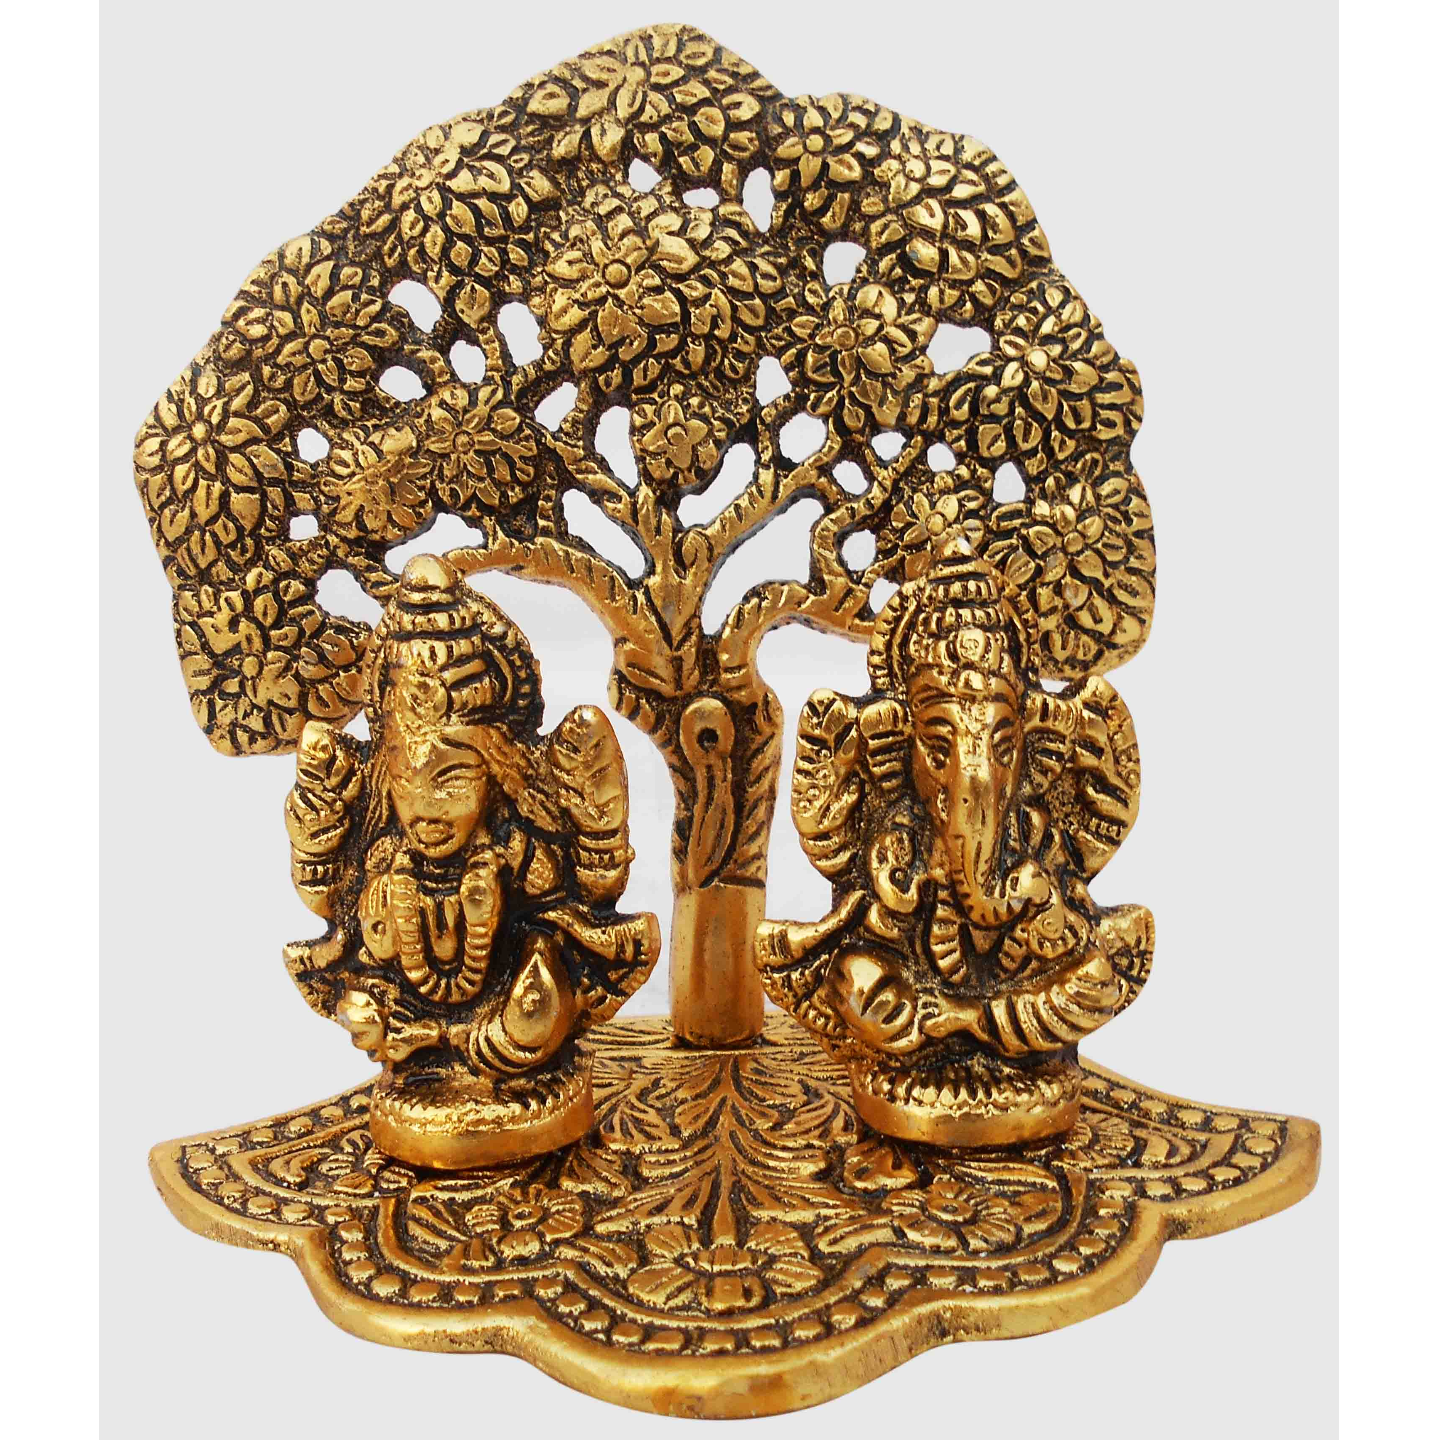 Aluminium Ganesh Laxmi In Gold Antique Finish - 4.93.34.7 Inch AS345 G